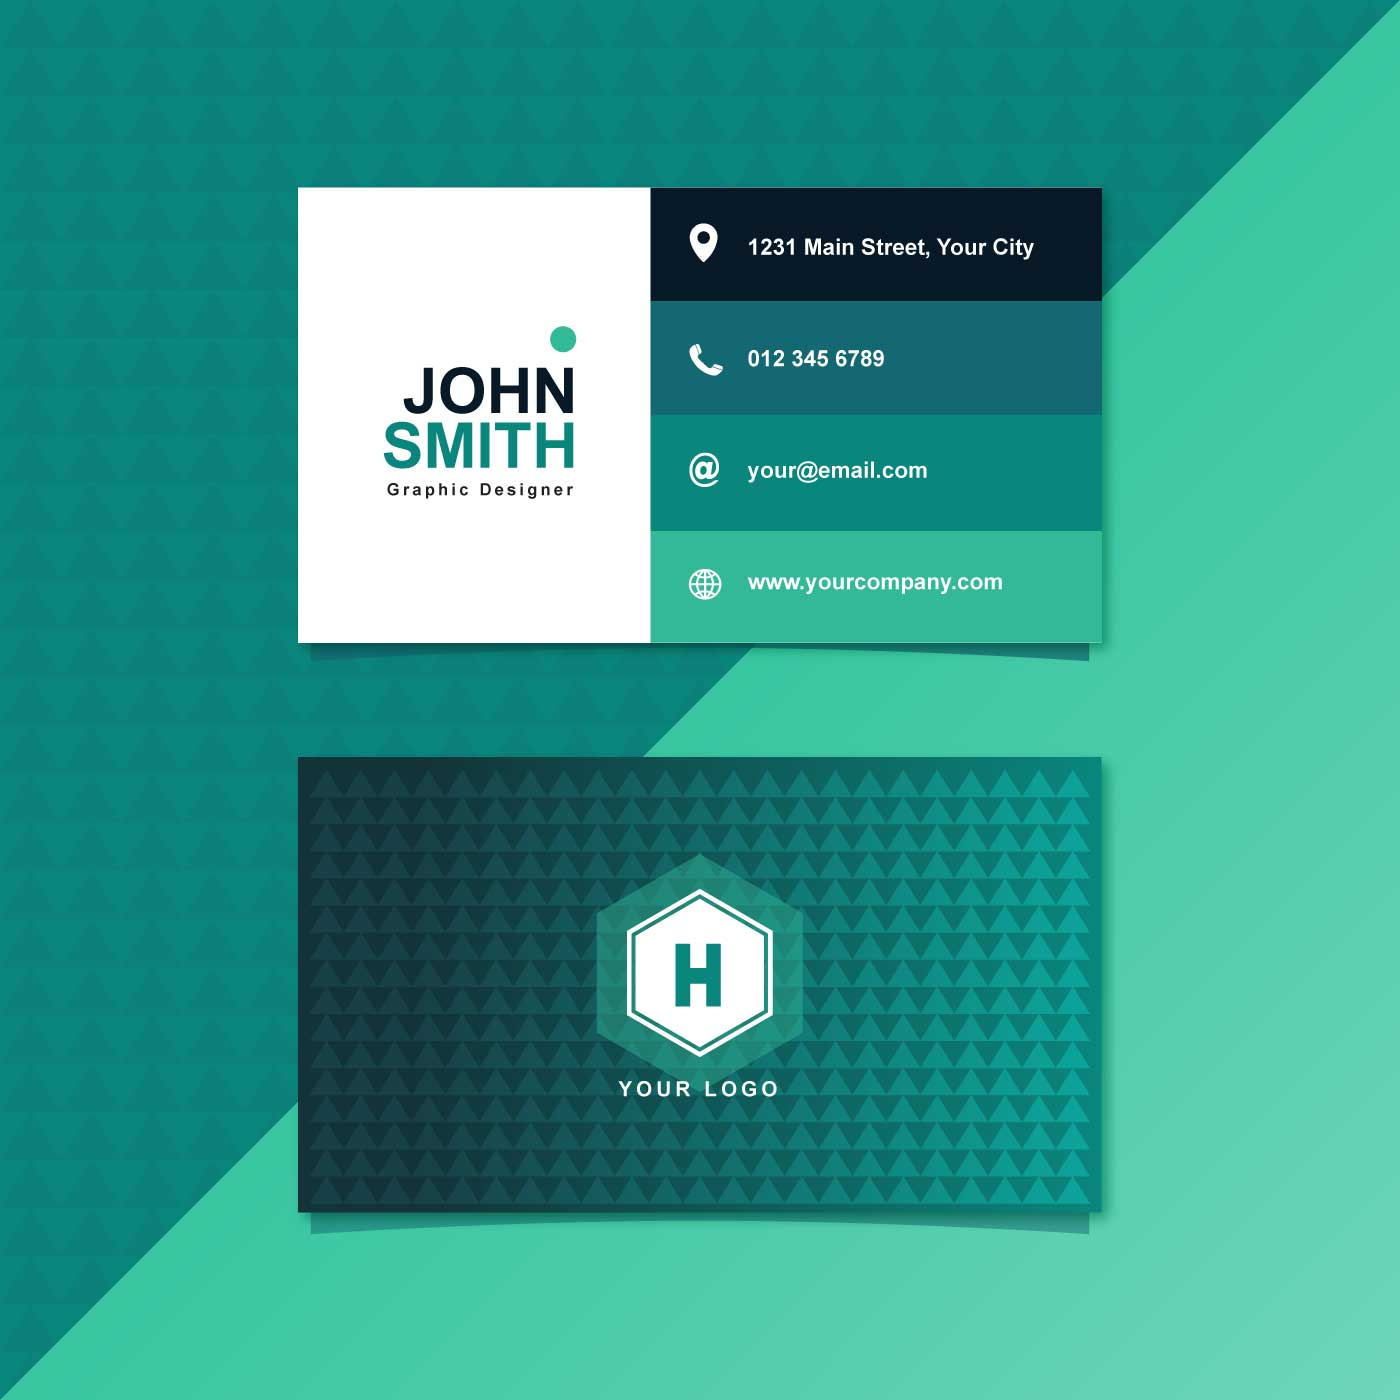 Free Business Card Graphics: Graphic Design Business Card